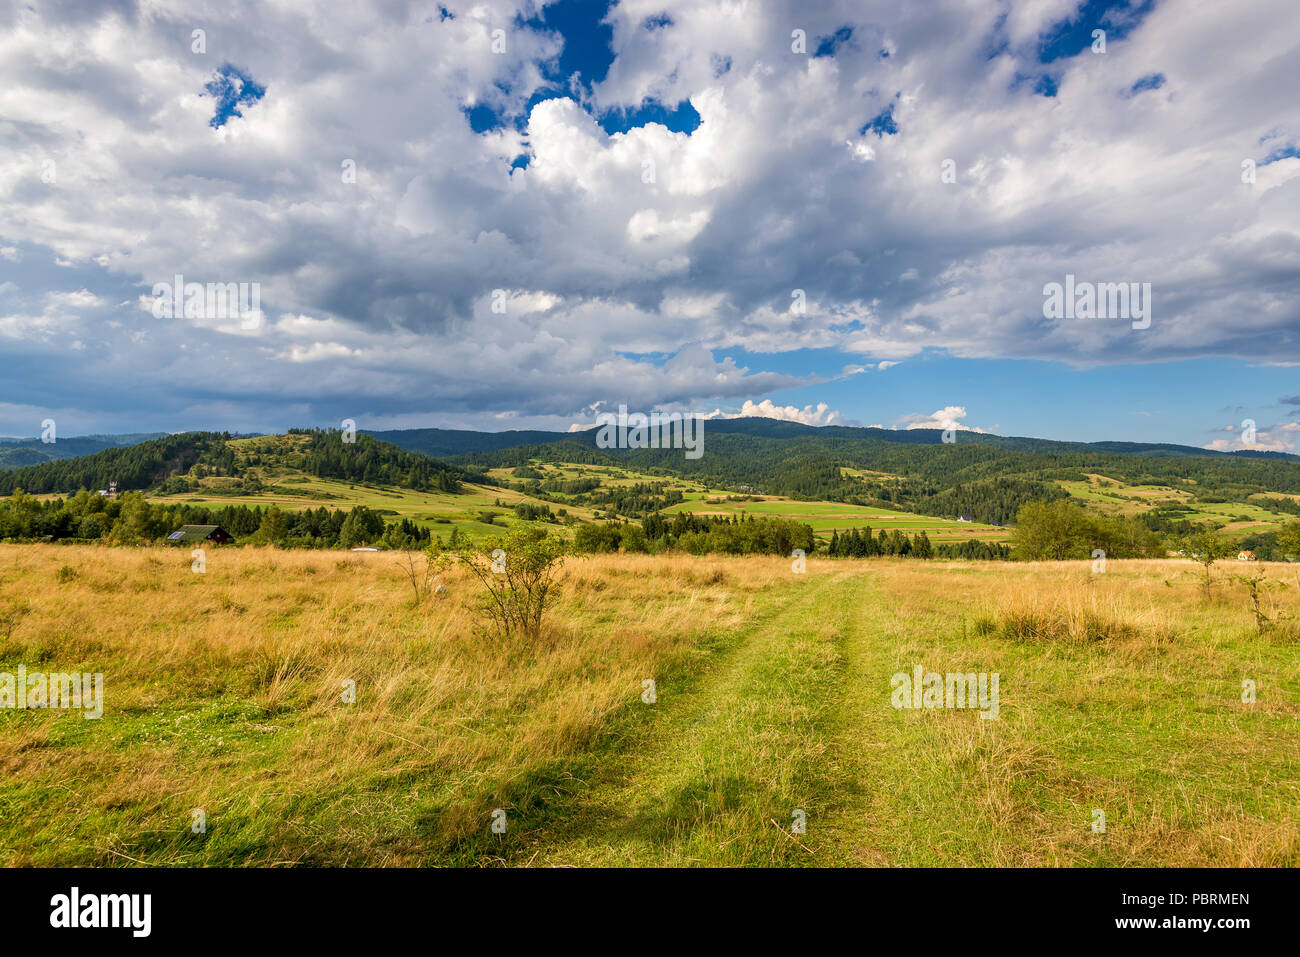 Rural scenery. Fields, mountains and clouds on the sky. Pieniny National Park. Malopolska, Poland.. - Stock Image